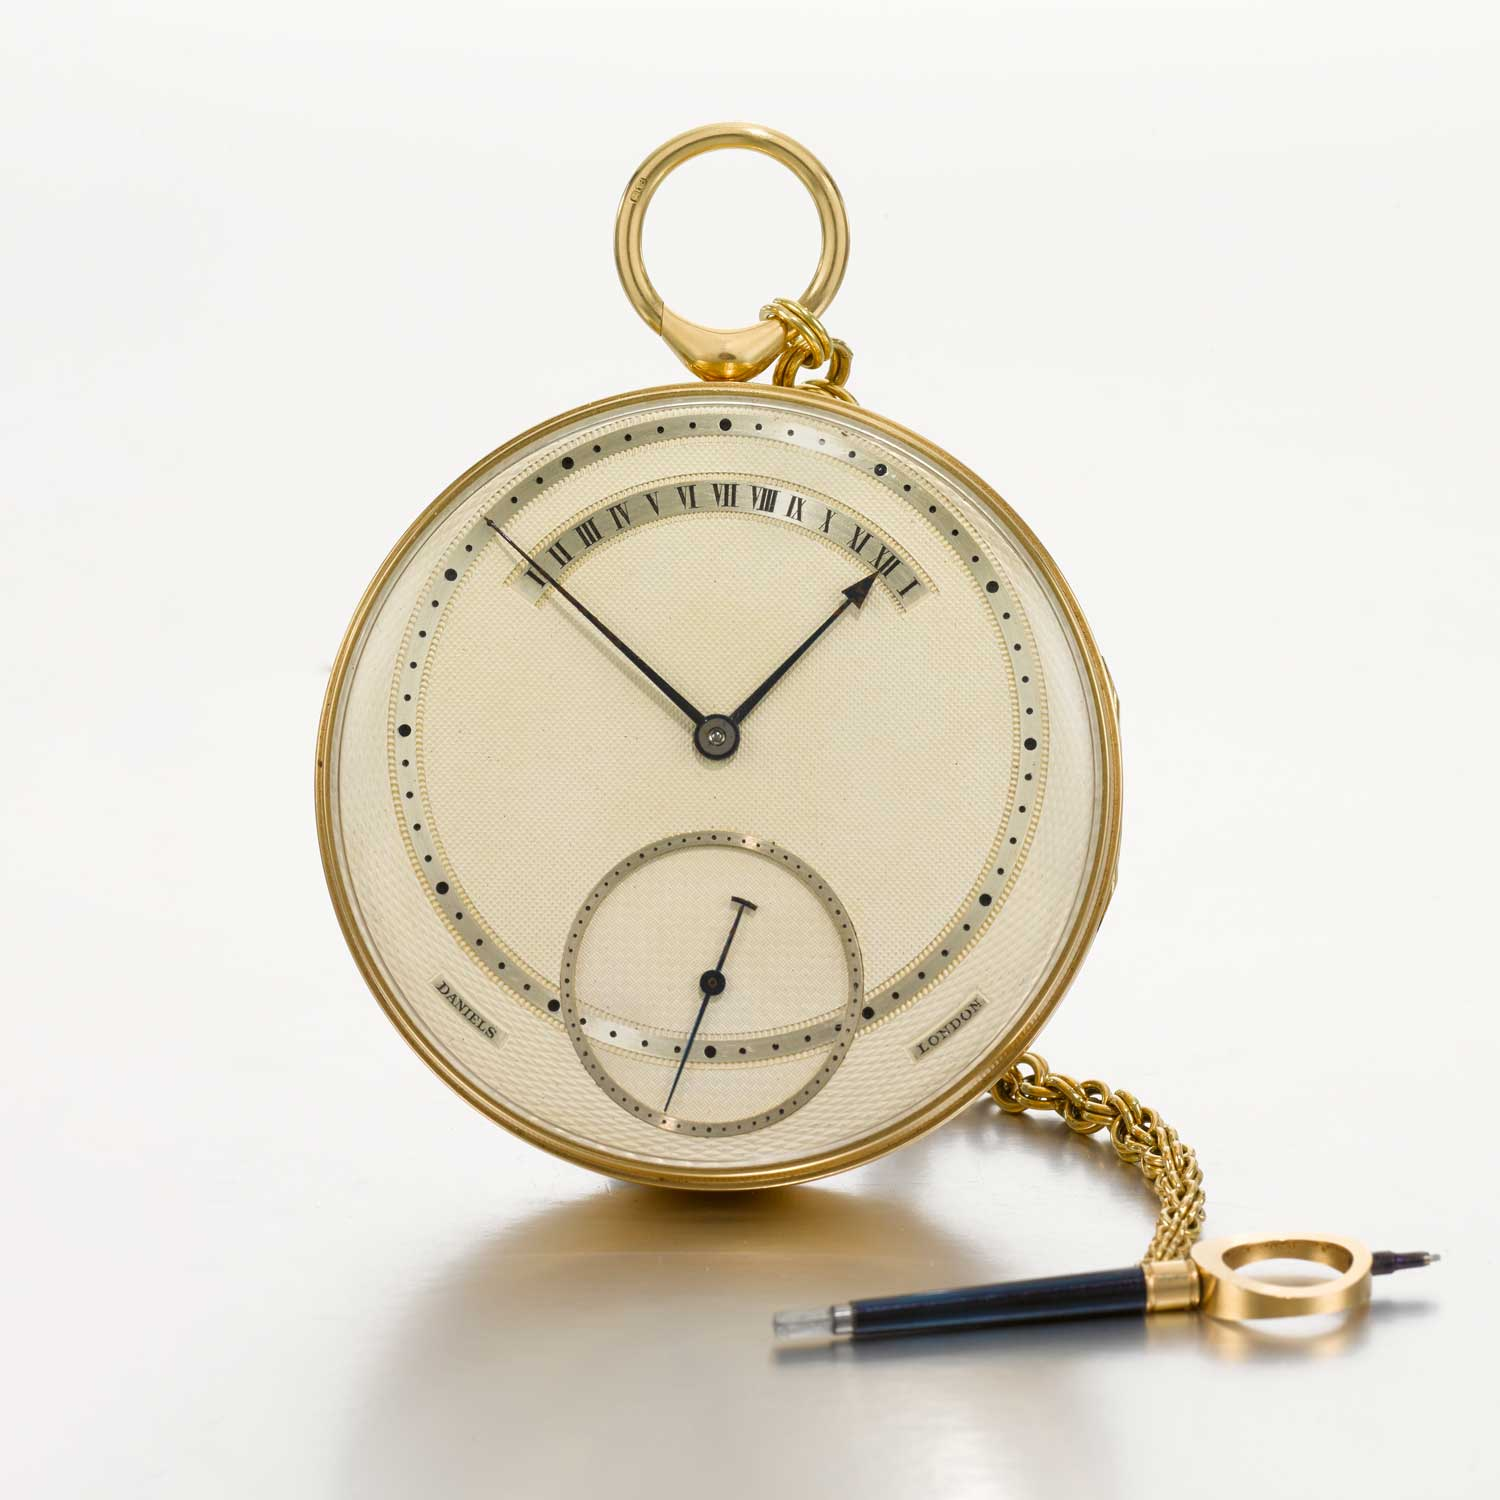 George Daniels' tourbillon pocket watch with a self-starting detent escapement (Image: Sotheby's)